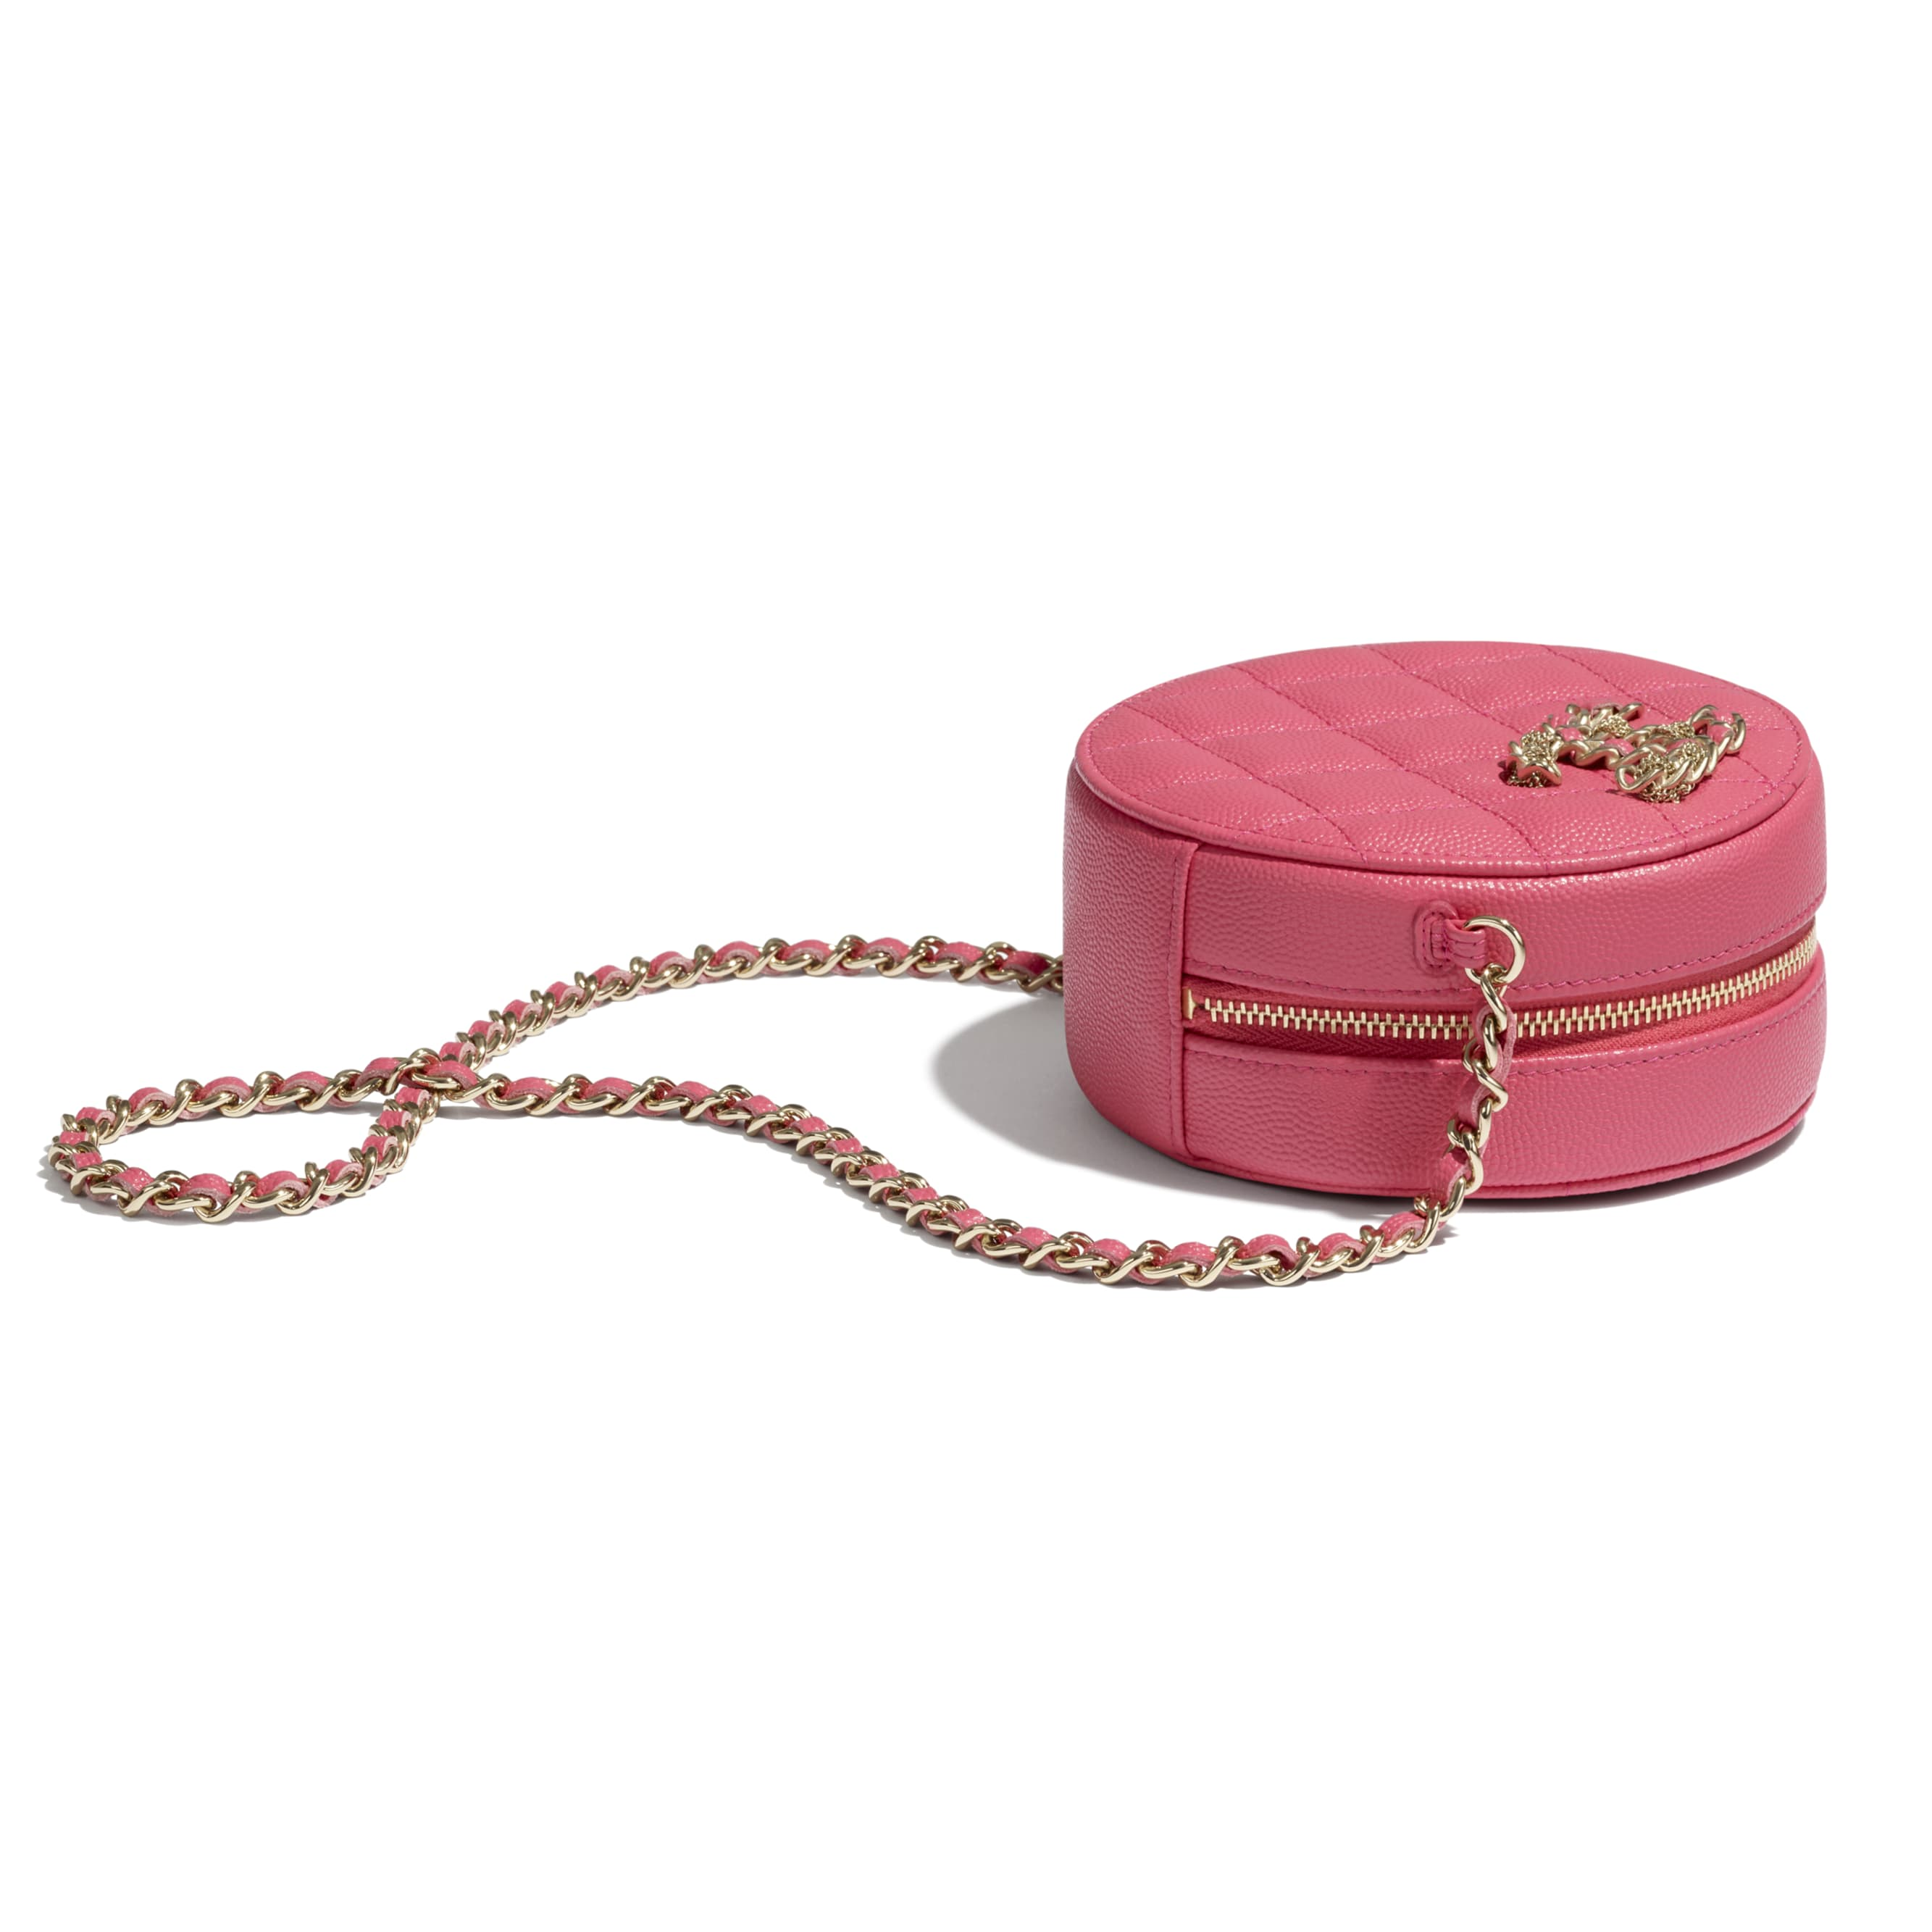 Clutch With Chain - Pink - Grained Calfskin & Gold-Tone Metal - CHANEL - Extra view - see standard sized version